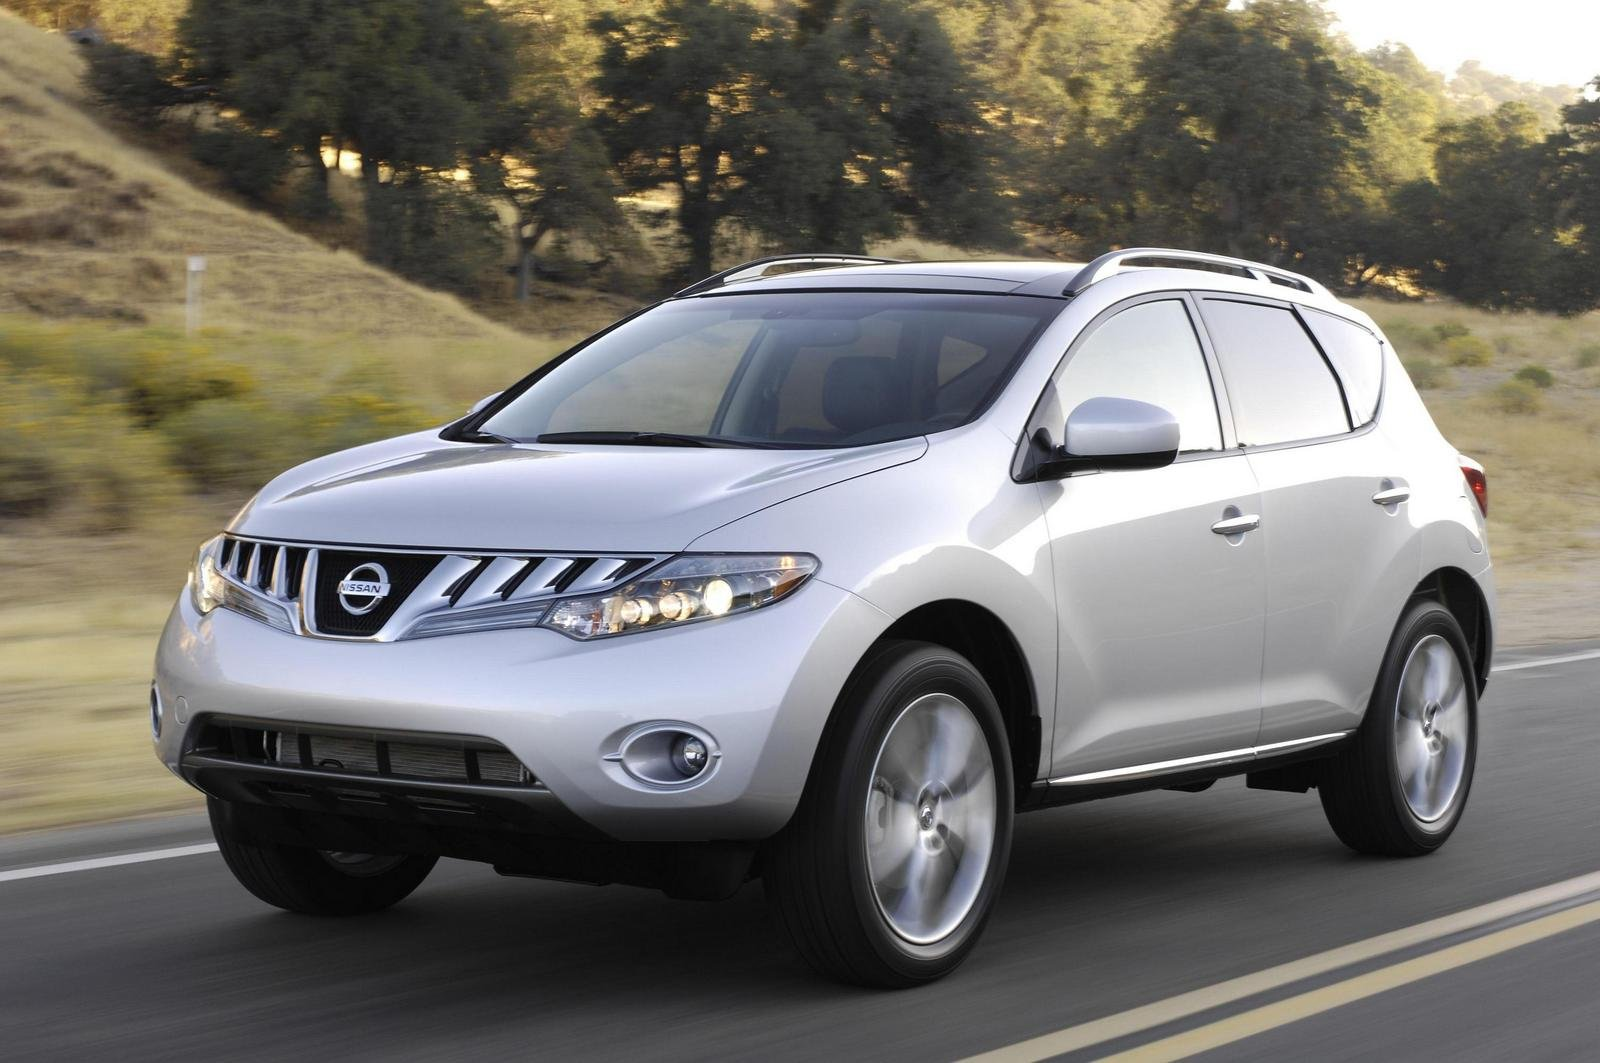 2009 Nissan Murano Pricing Announced News Top Speed